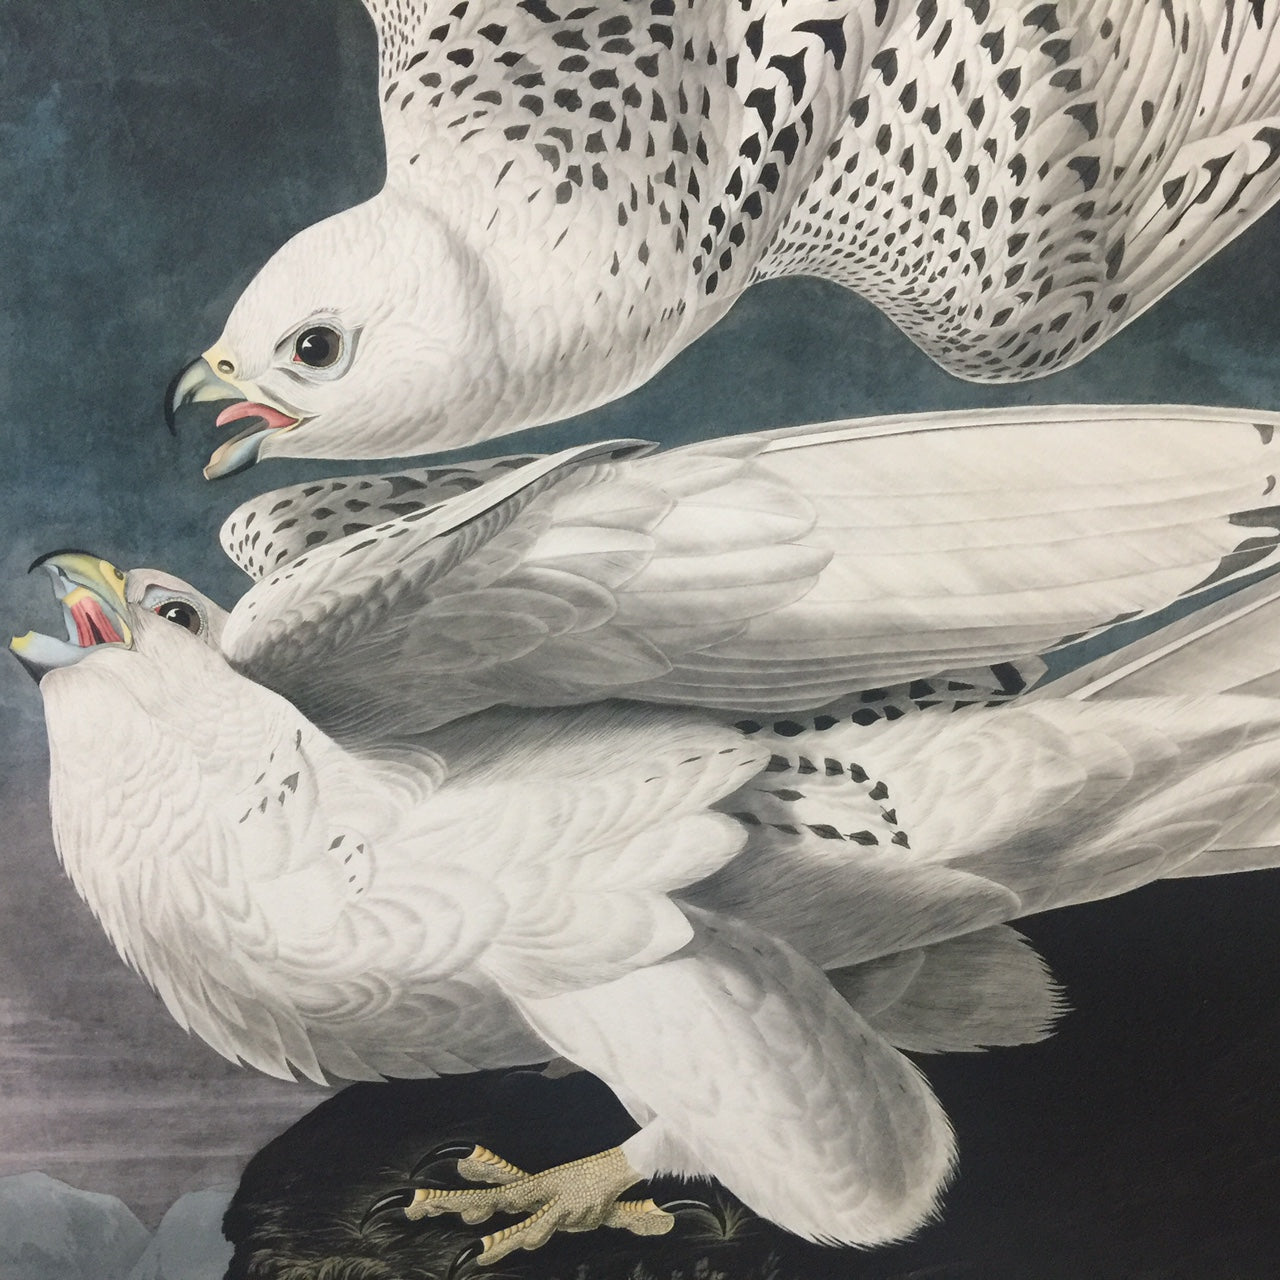 Rare Prints Gyrfalcon or Iceland Falcon, Edition of 500